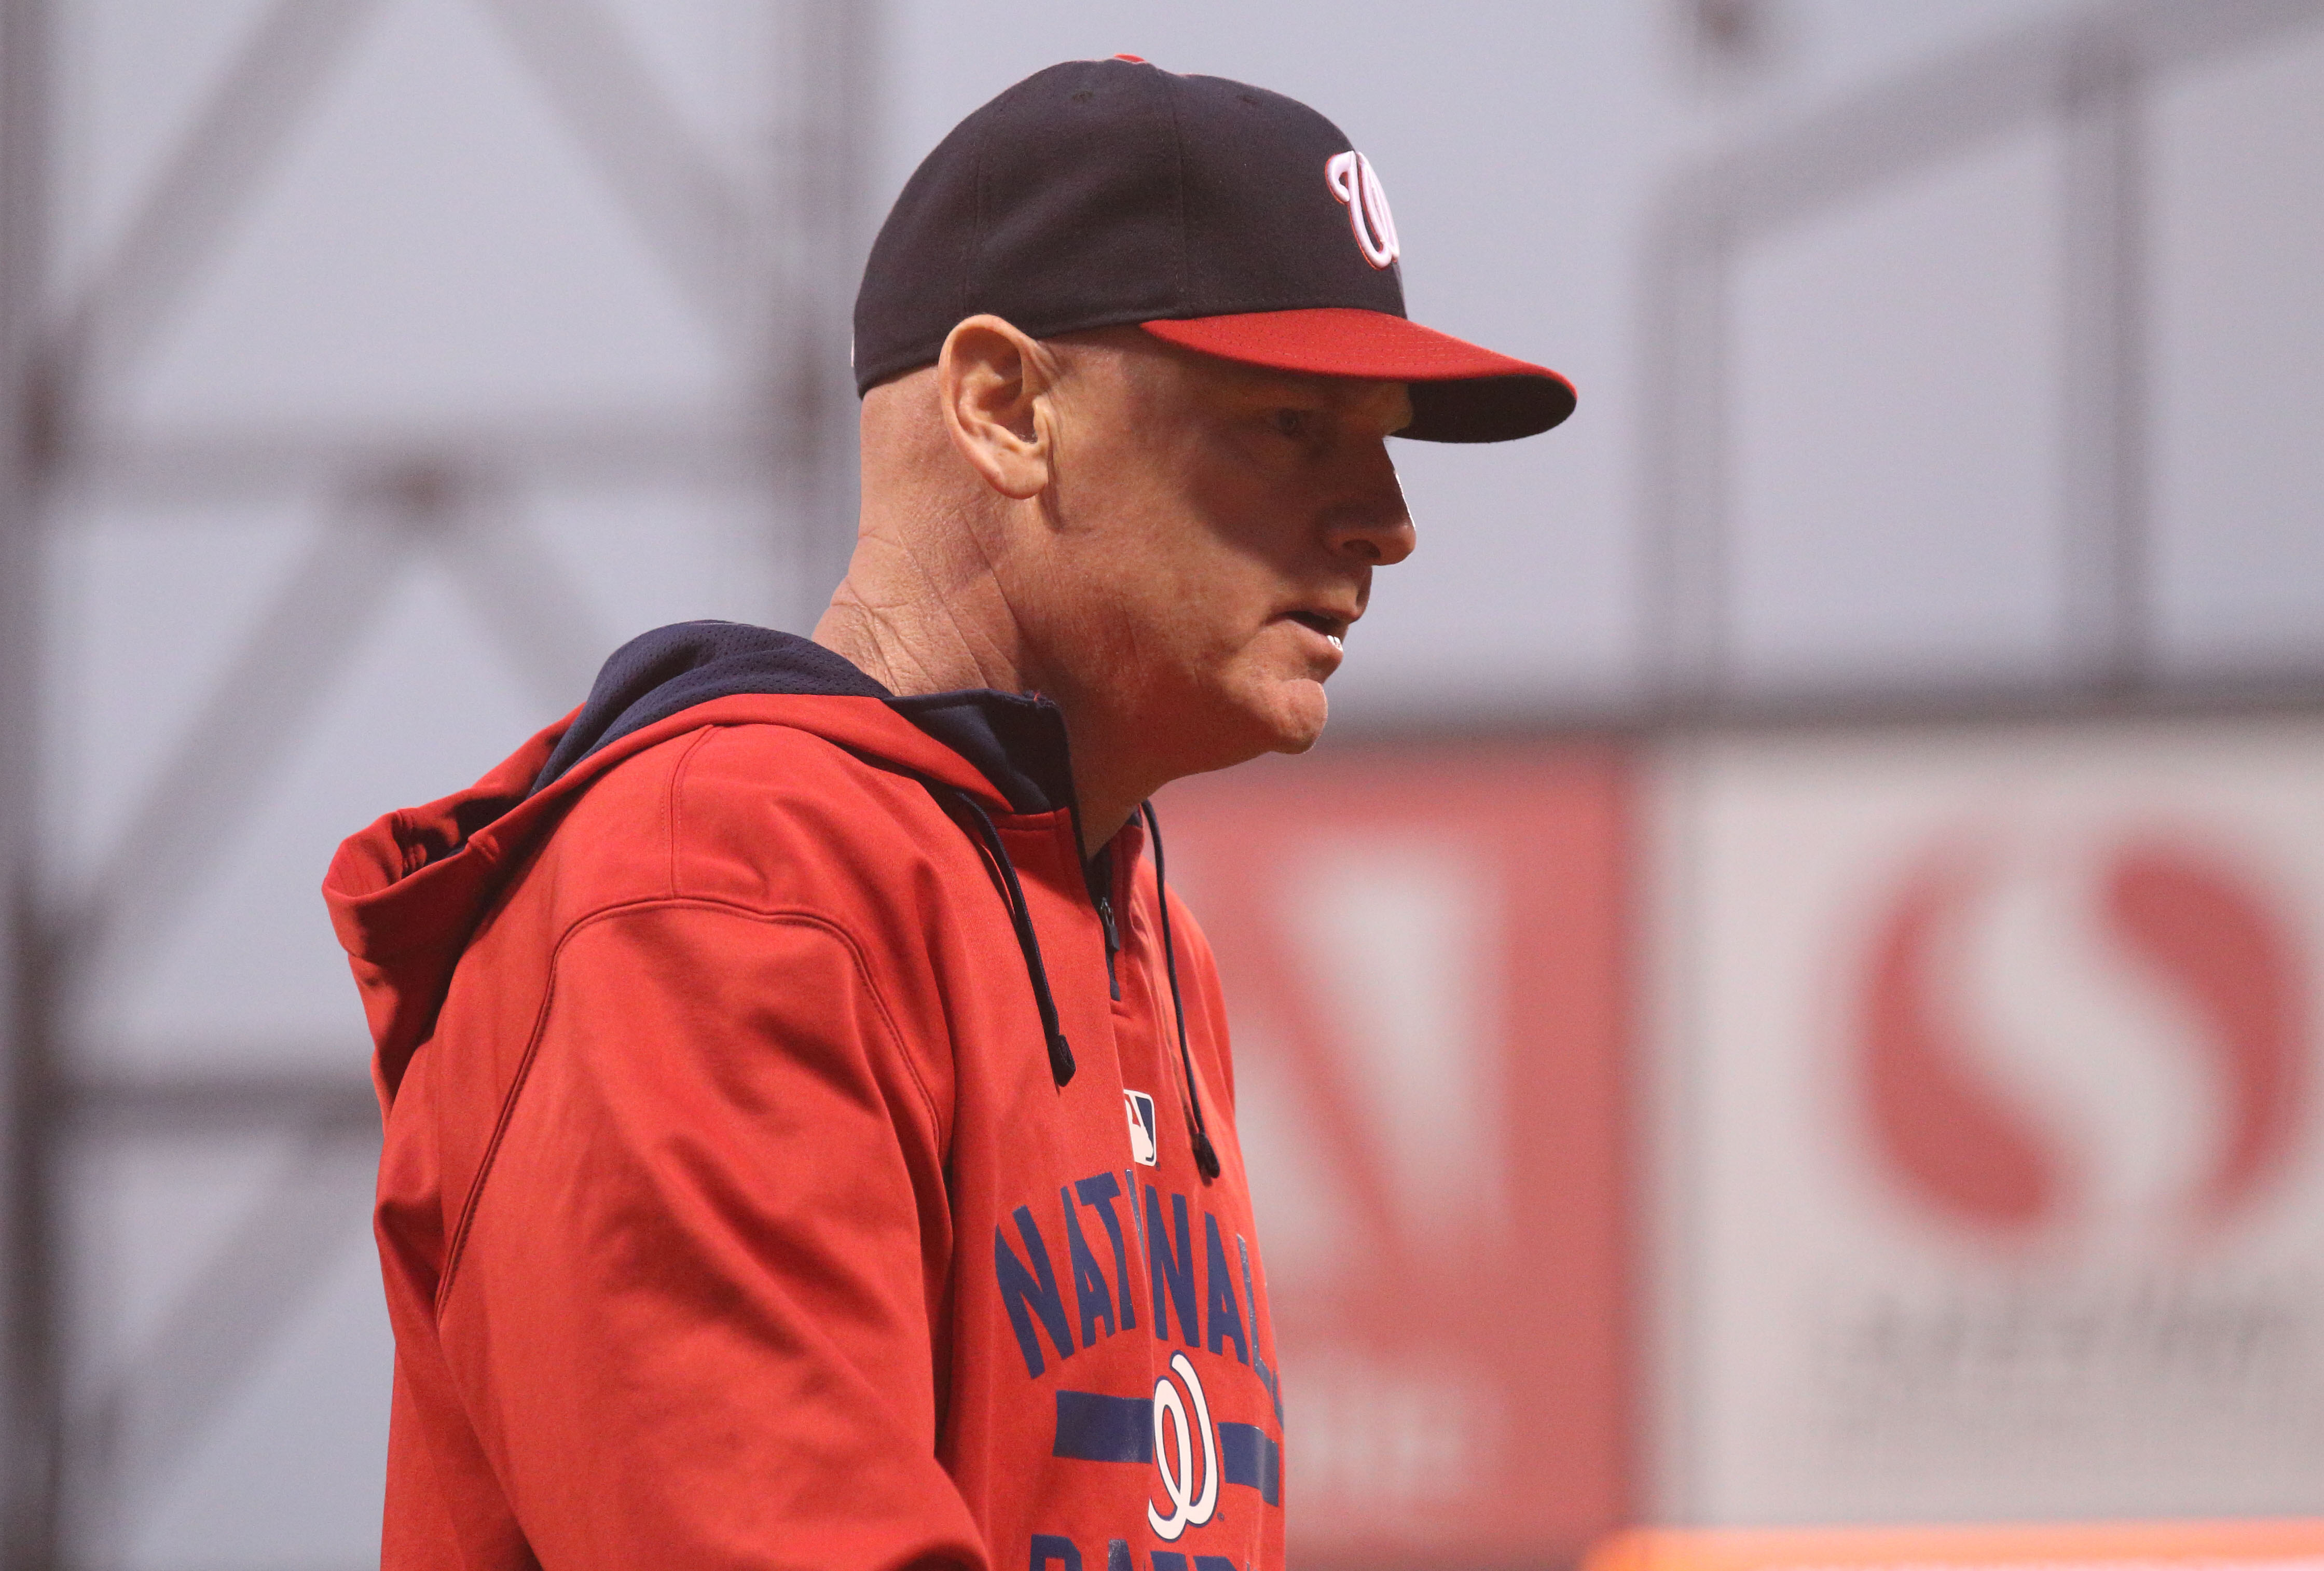 Matt Williams double switched to move his pitcher's spot up in the order. Huh?